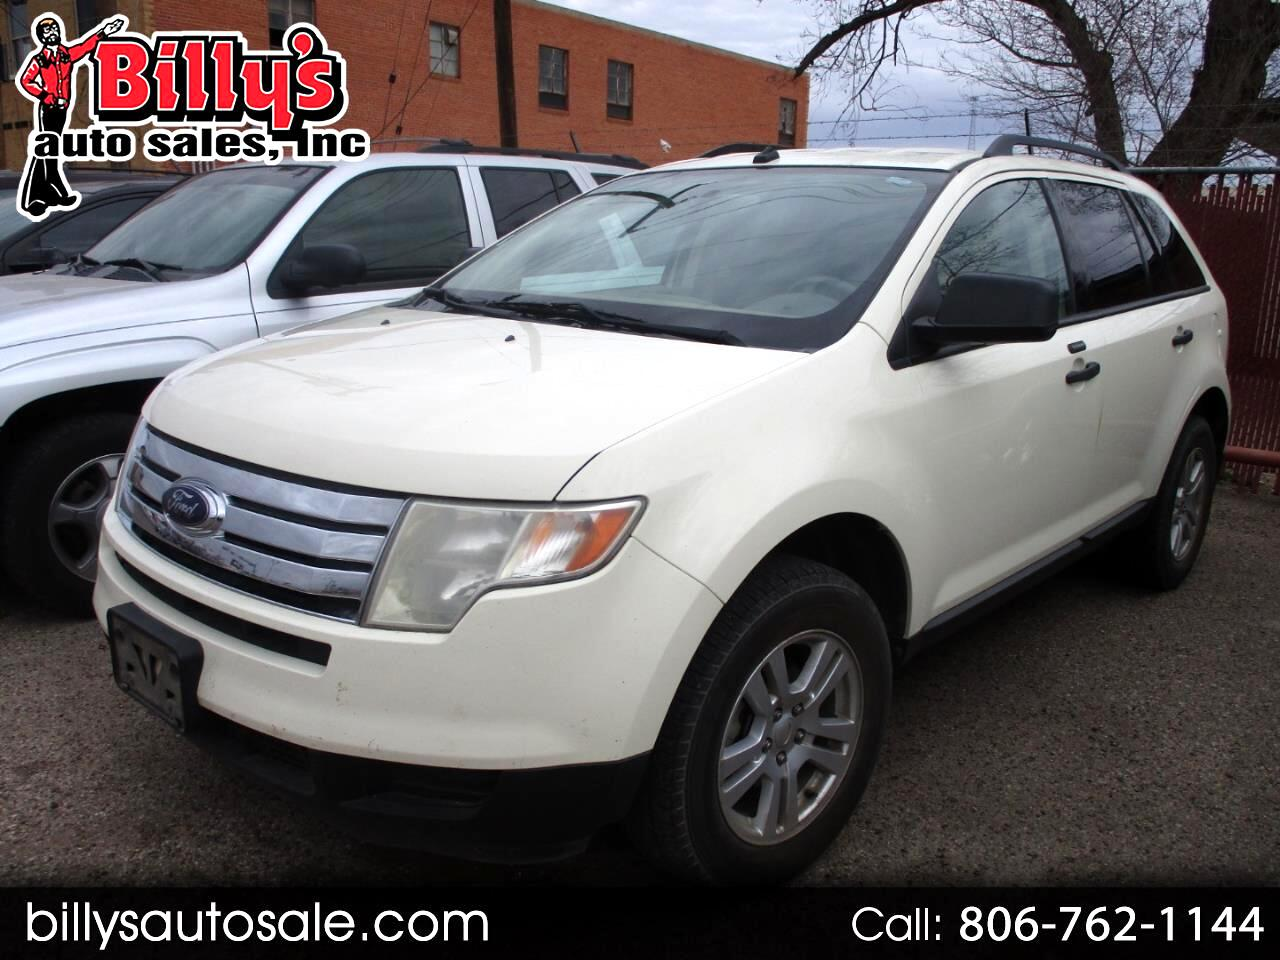 2007 ford edge  $6,795  inquiry apply online photos 6  details